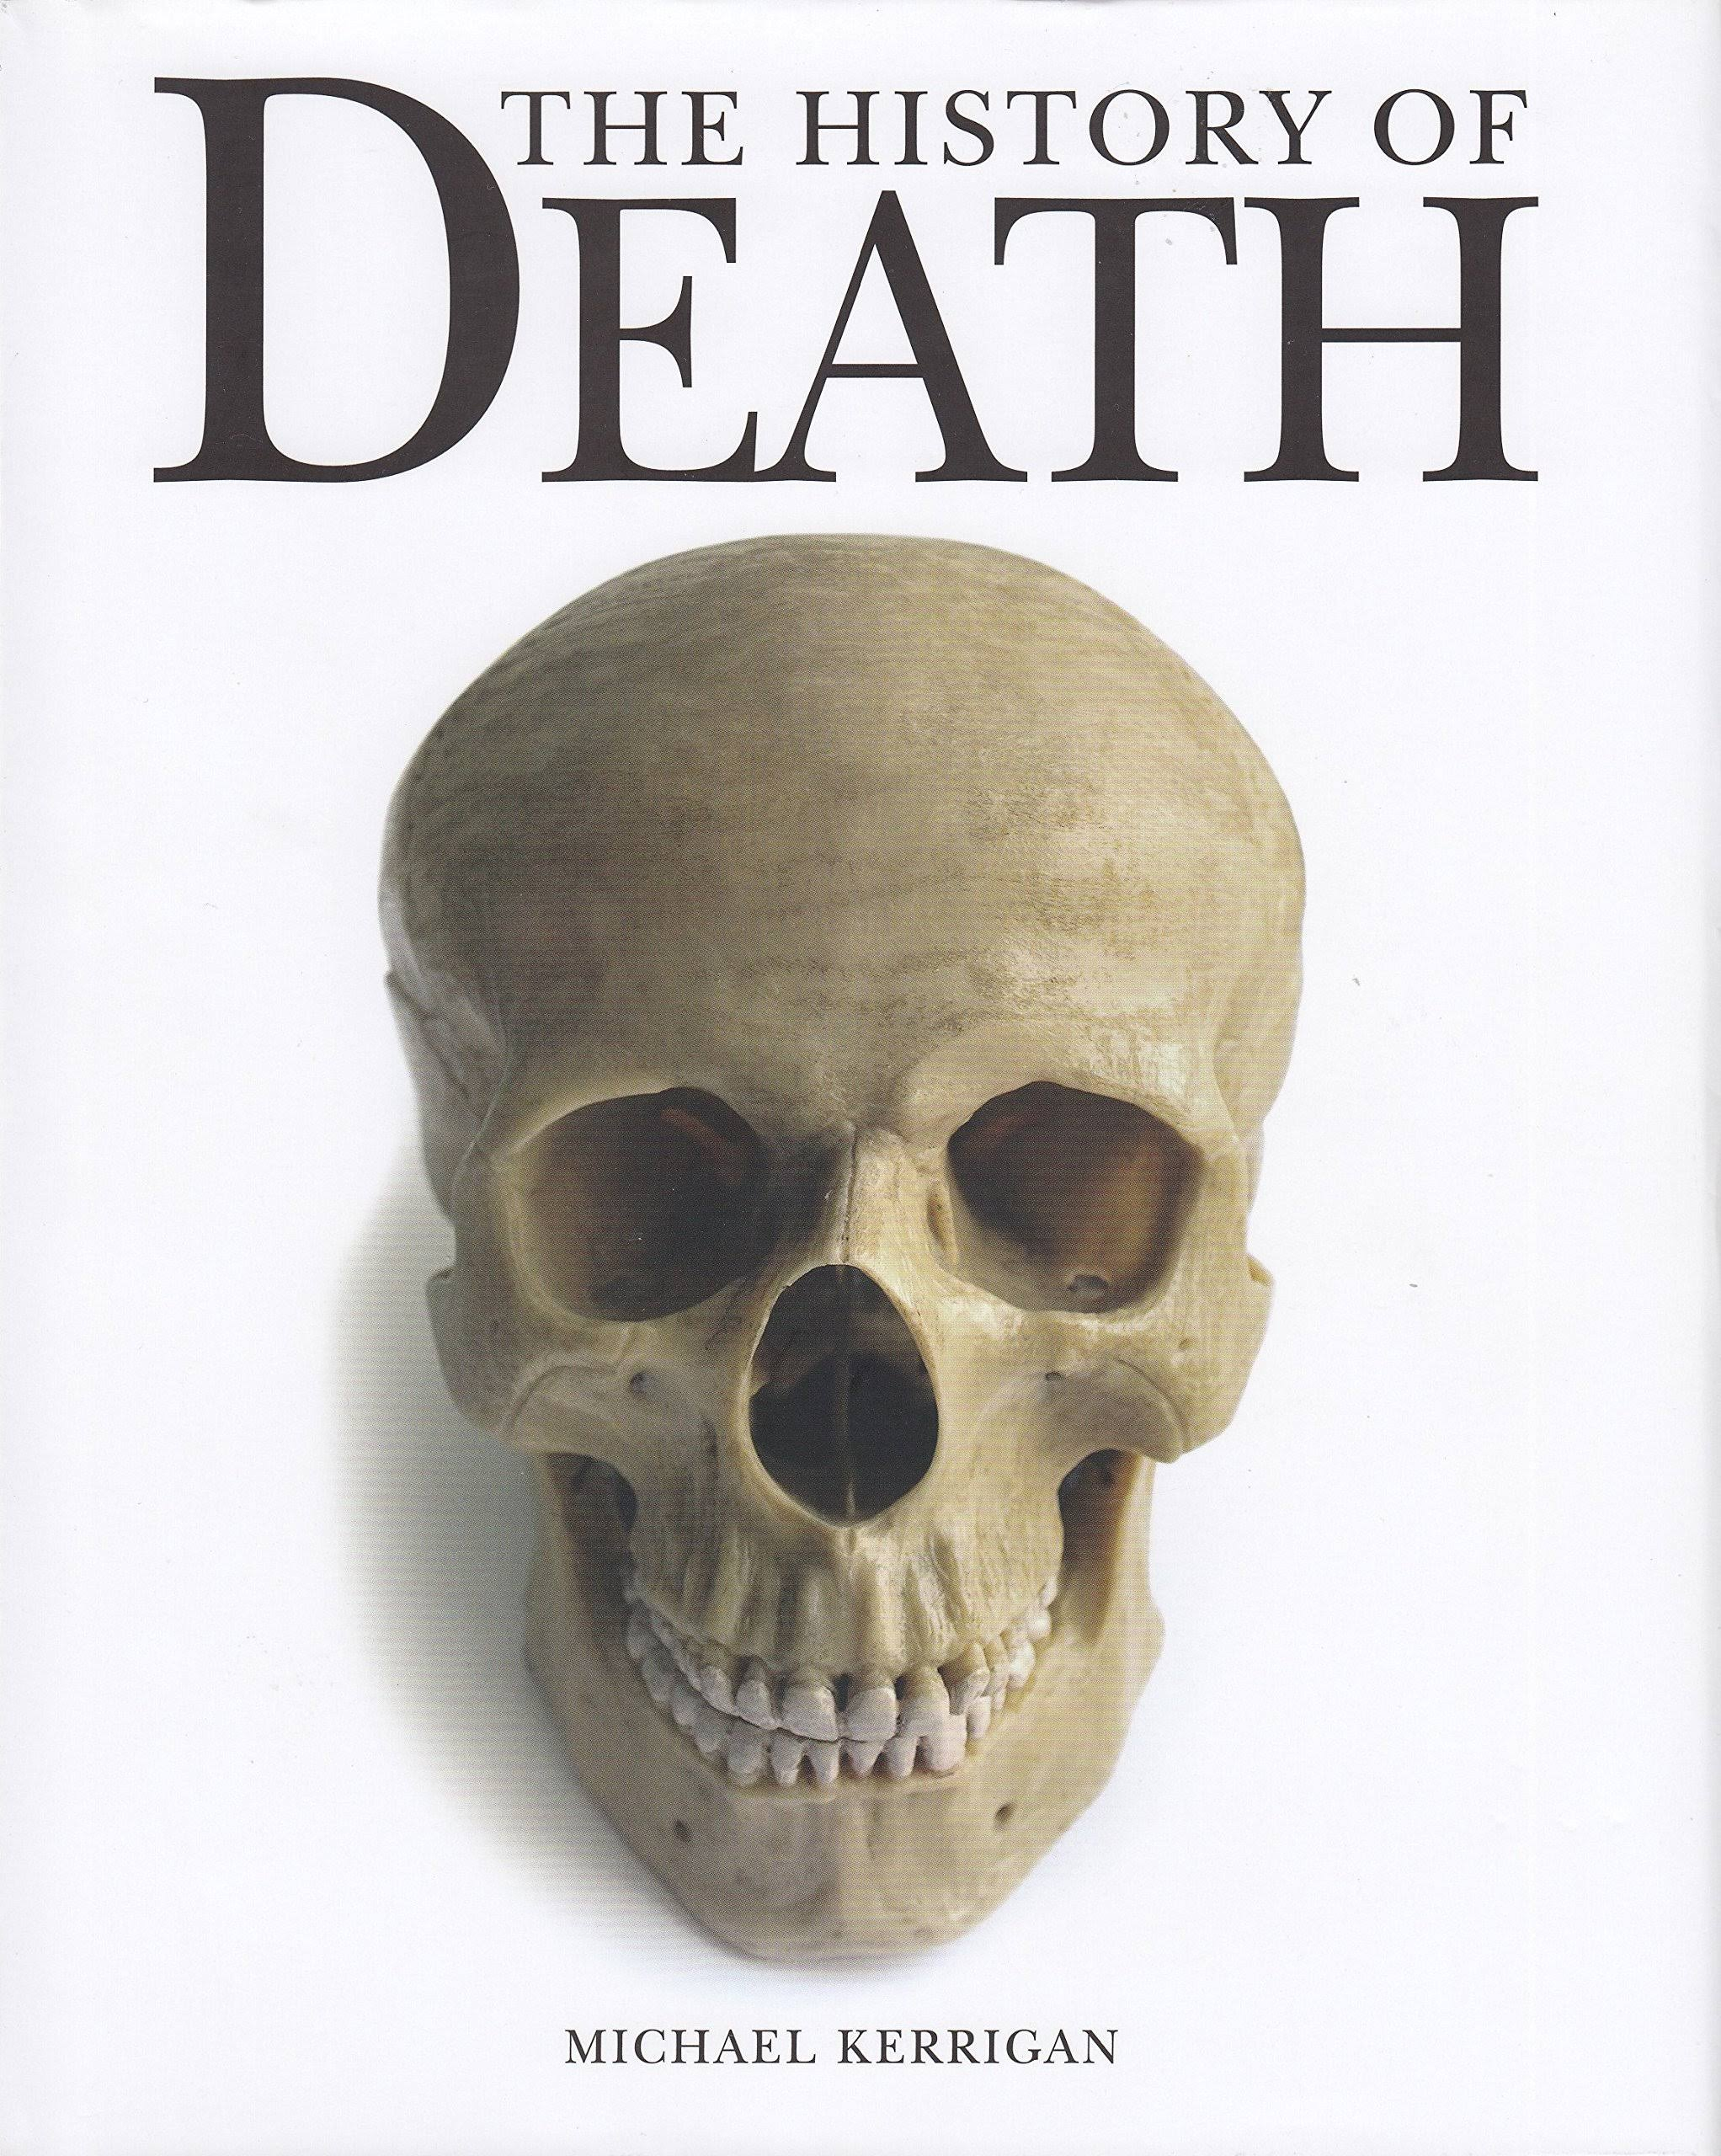 The History of Death [Book]